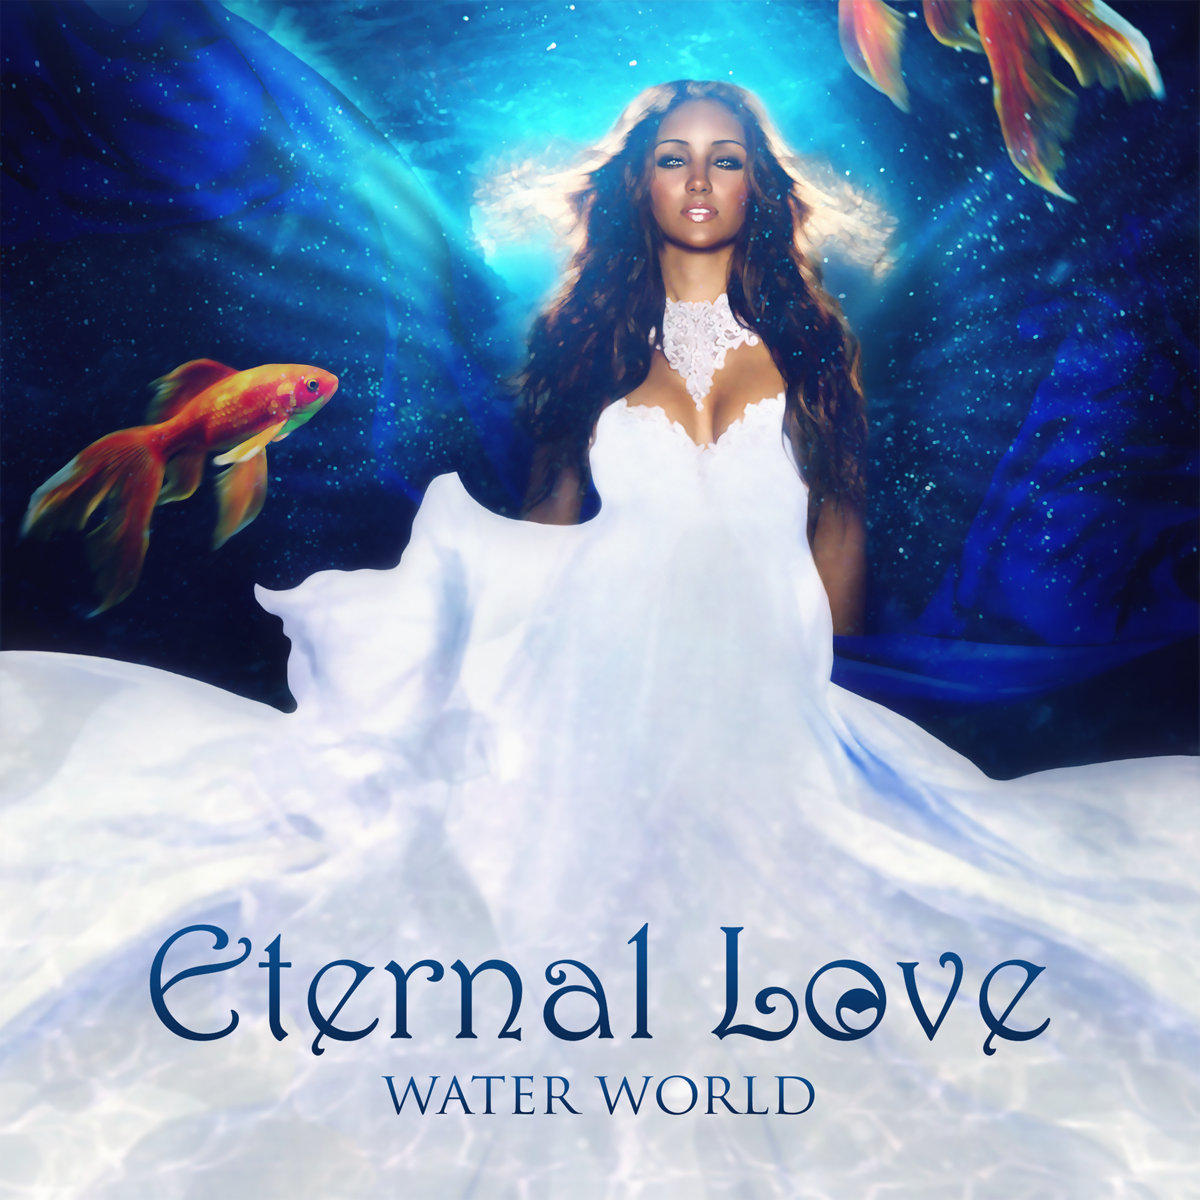 Eternal Love - Water World (Intro) @ 'Water World' album (ambient, beautiful)